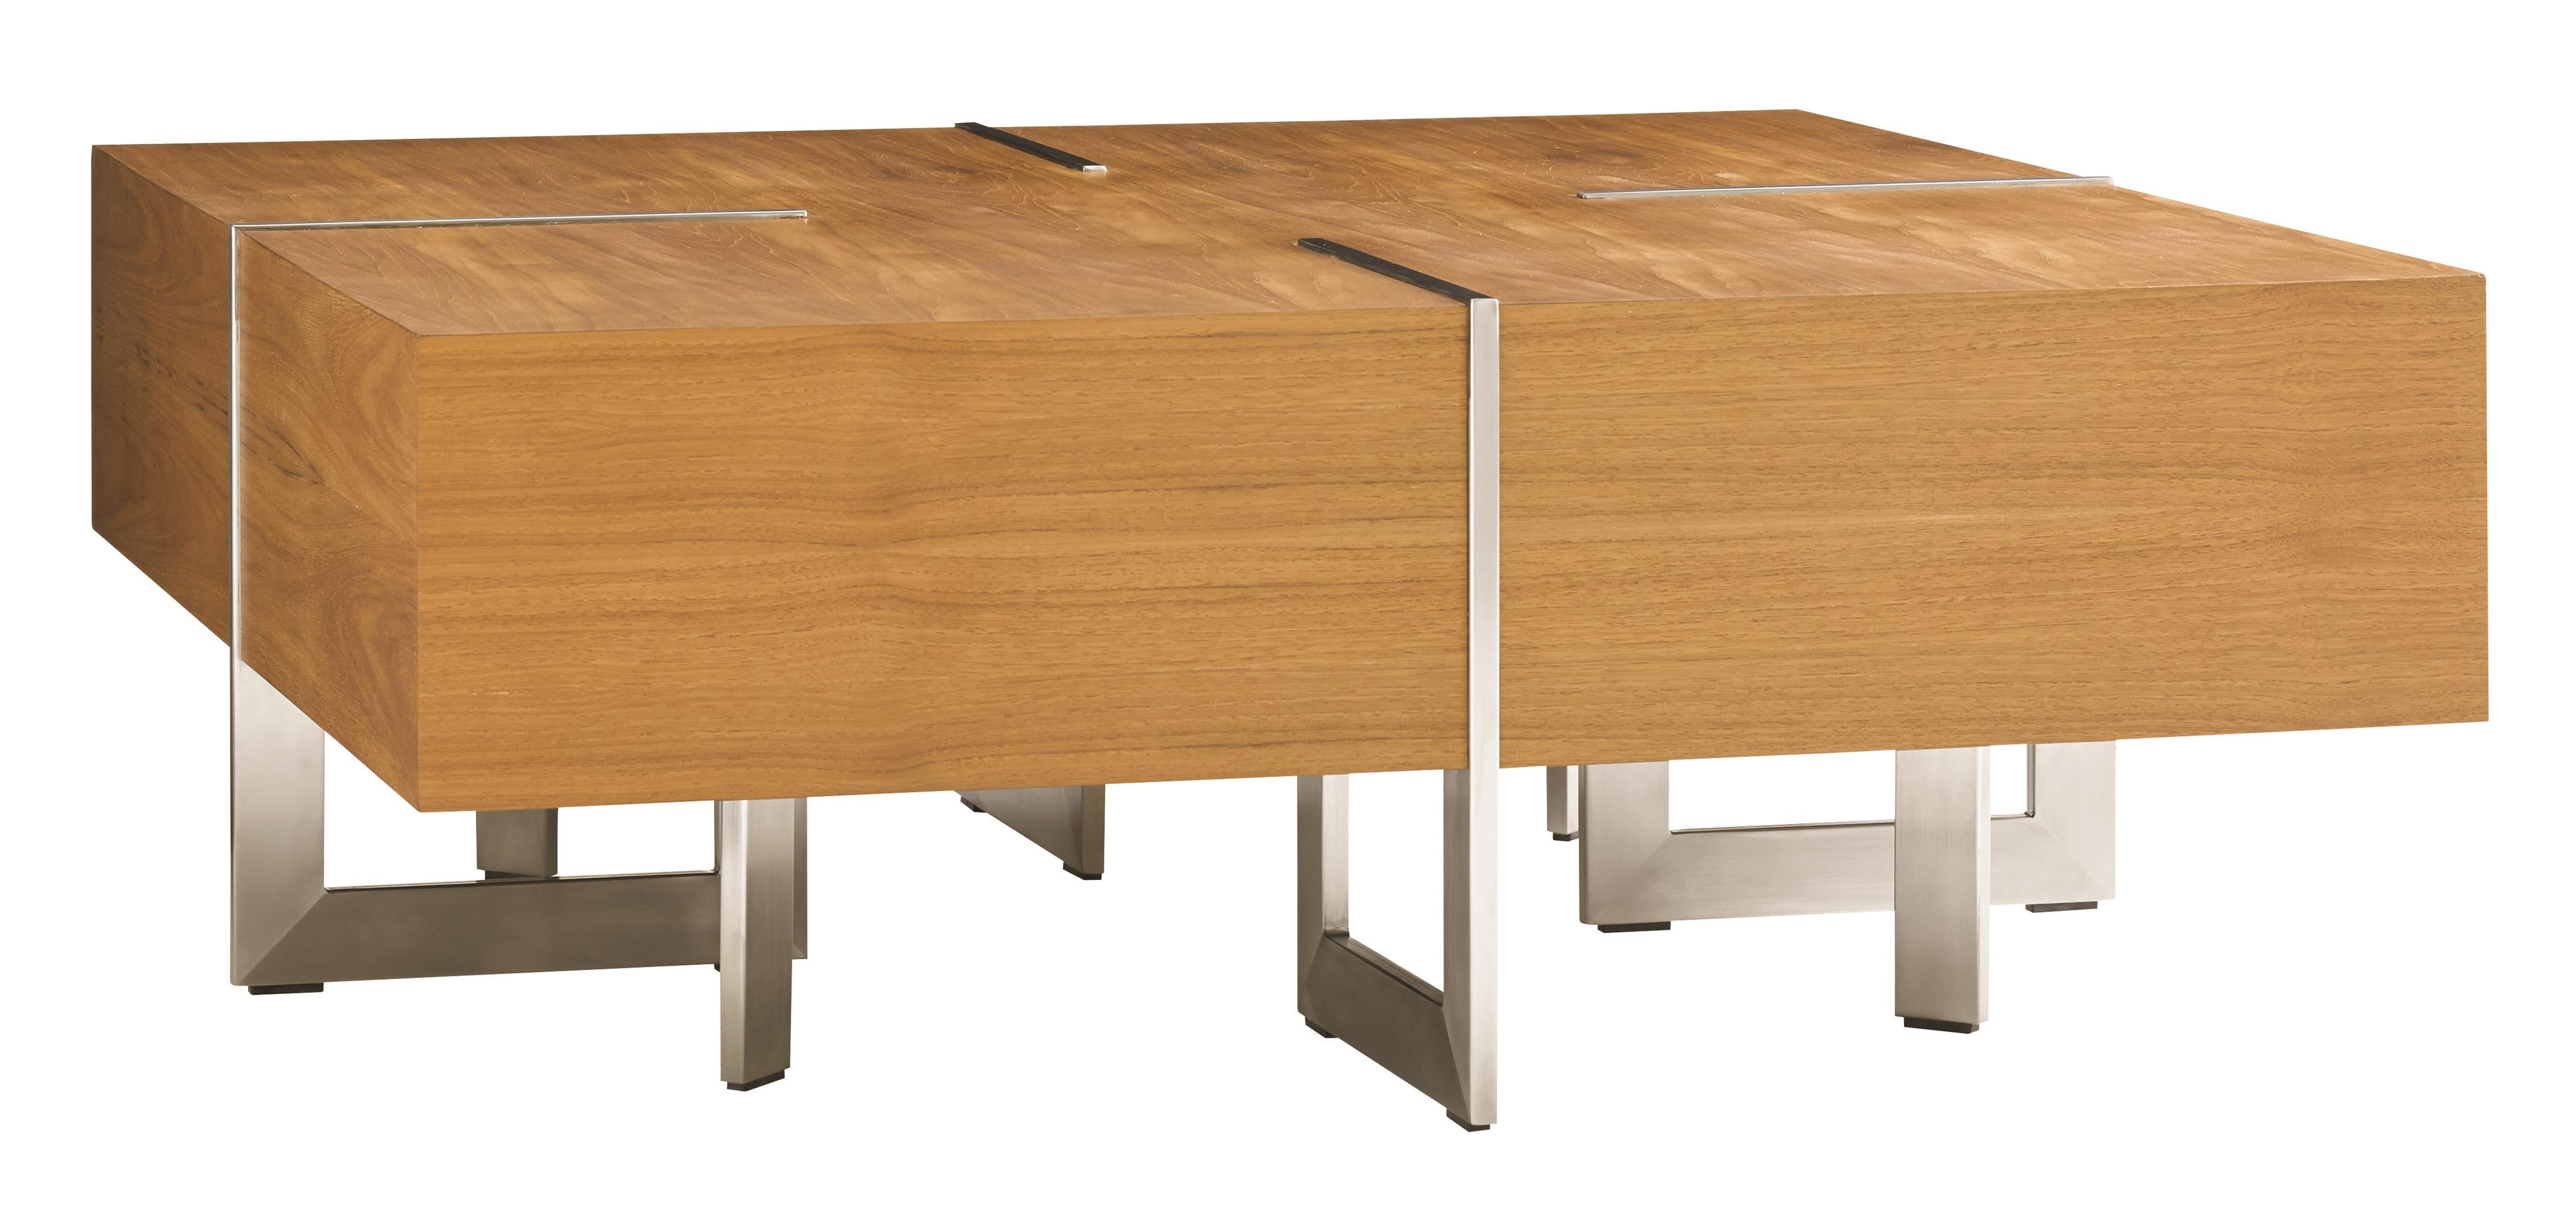 Tommy Bahama Outdoor Living Tres Chic Square Cocktail Table - Item Number: 3401-947